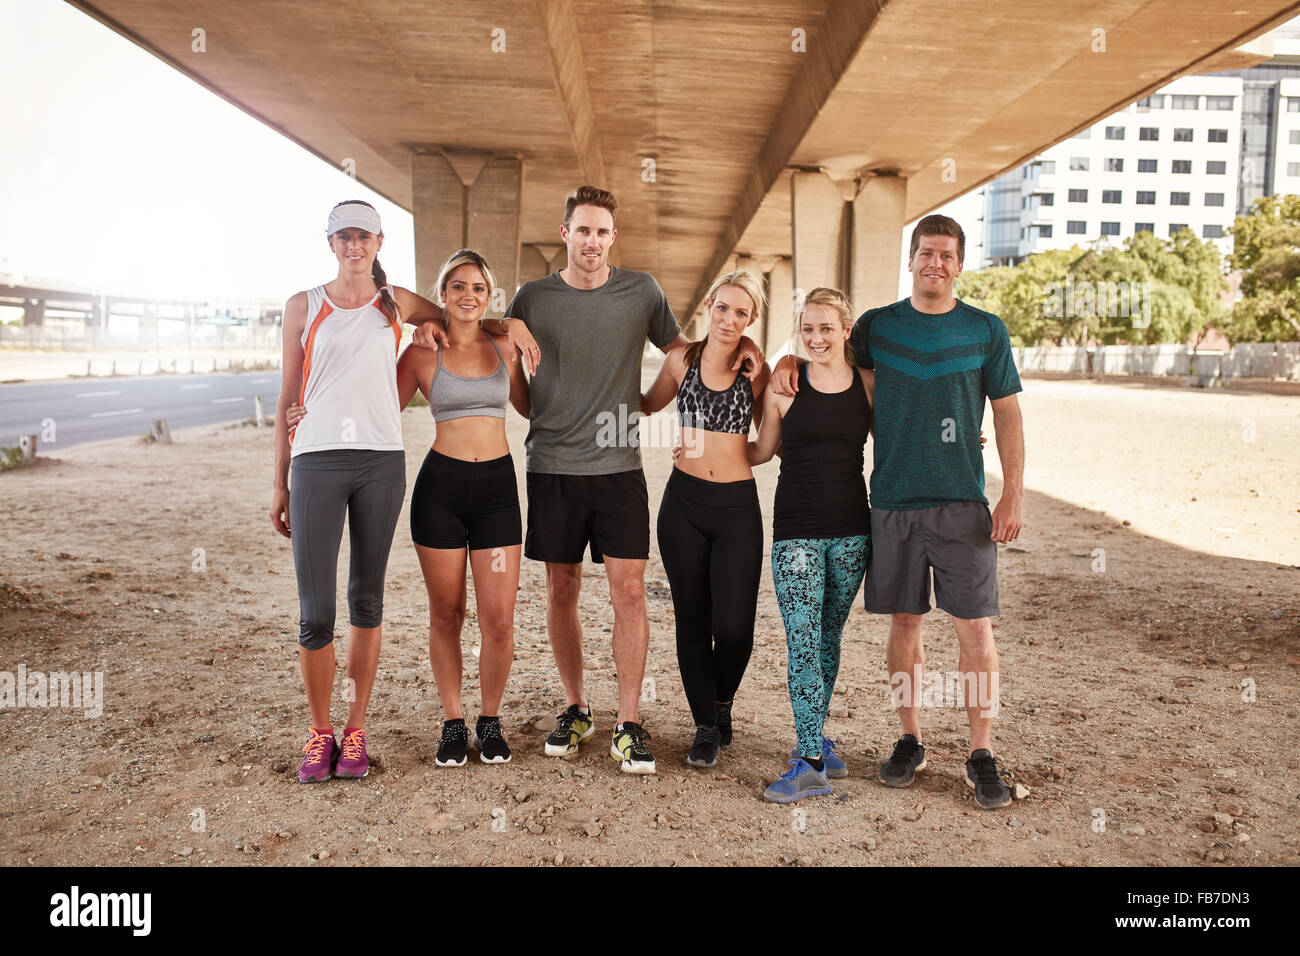 Portrait of running club group standing together and posing for camera. Healthy young men and women training outdoors. - Stock Image